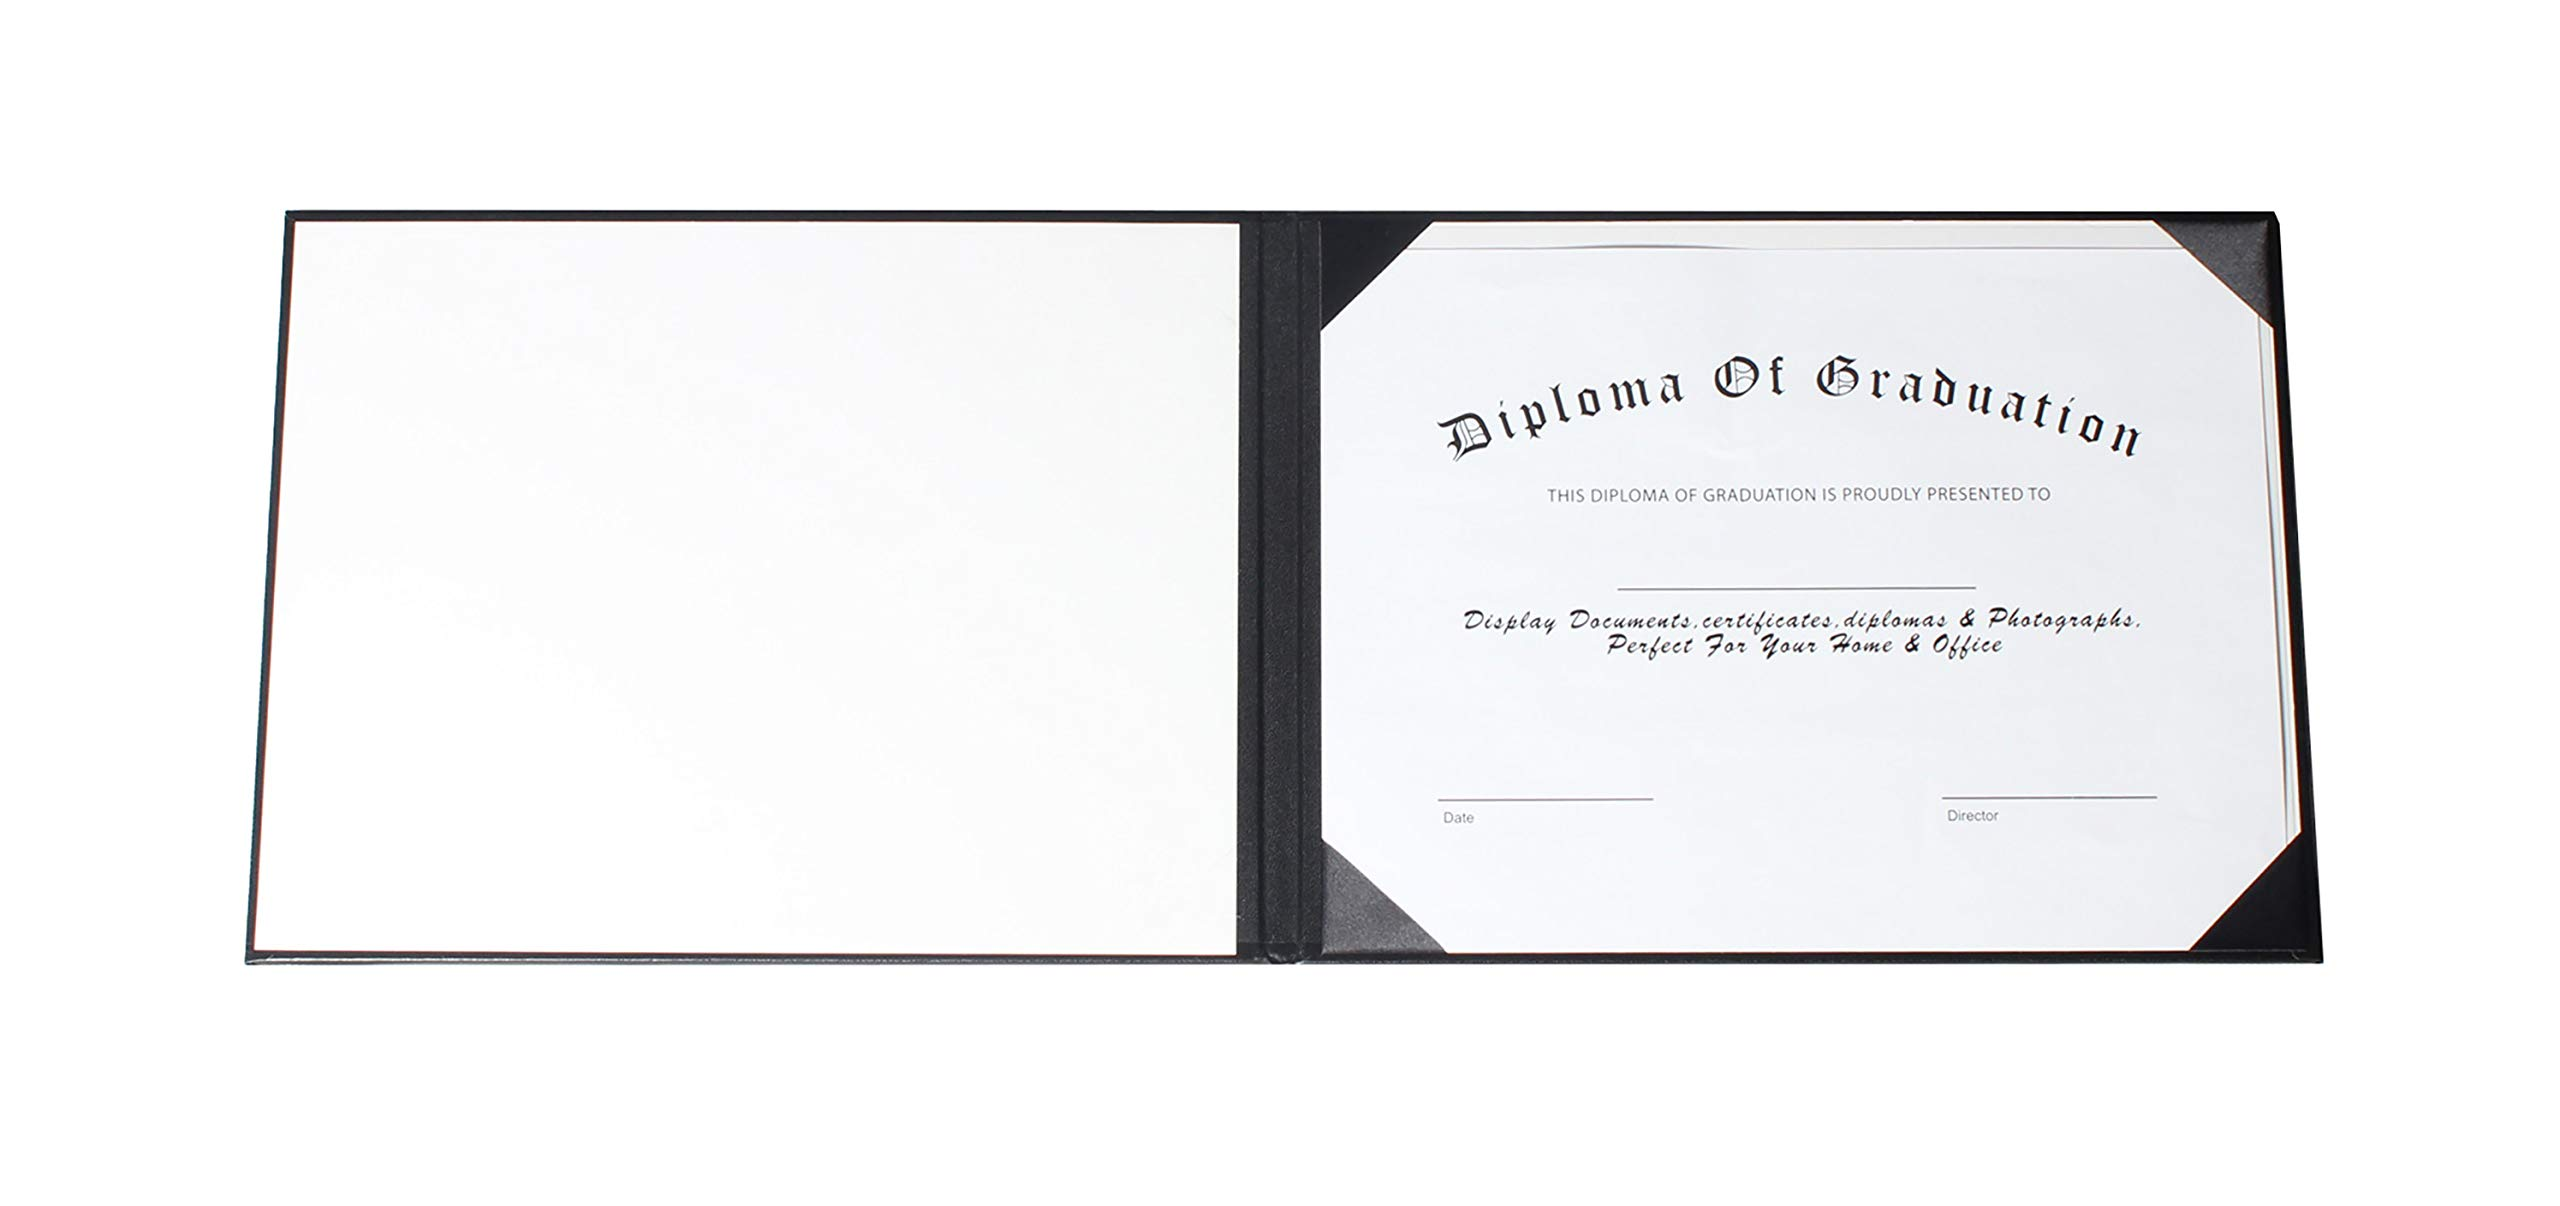 GraduationService Smooth Diploma Certificate Cover 8 1/2'' x 11'' (Black) by GraduationService (Image #4)